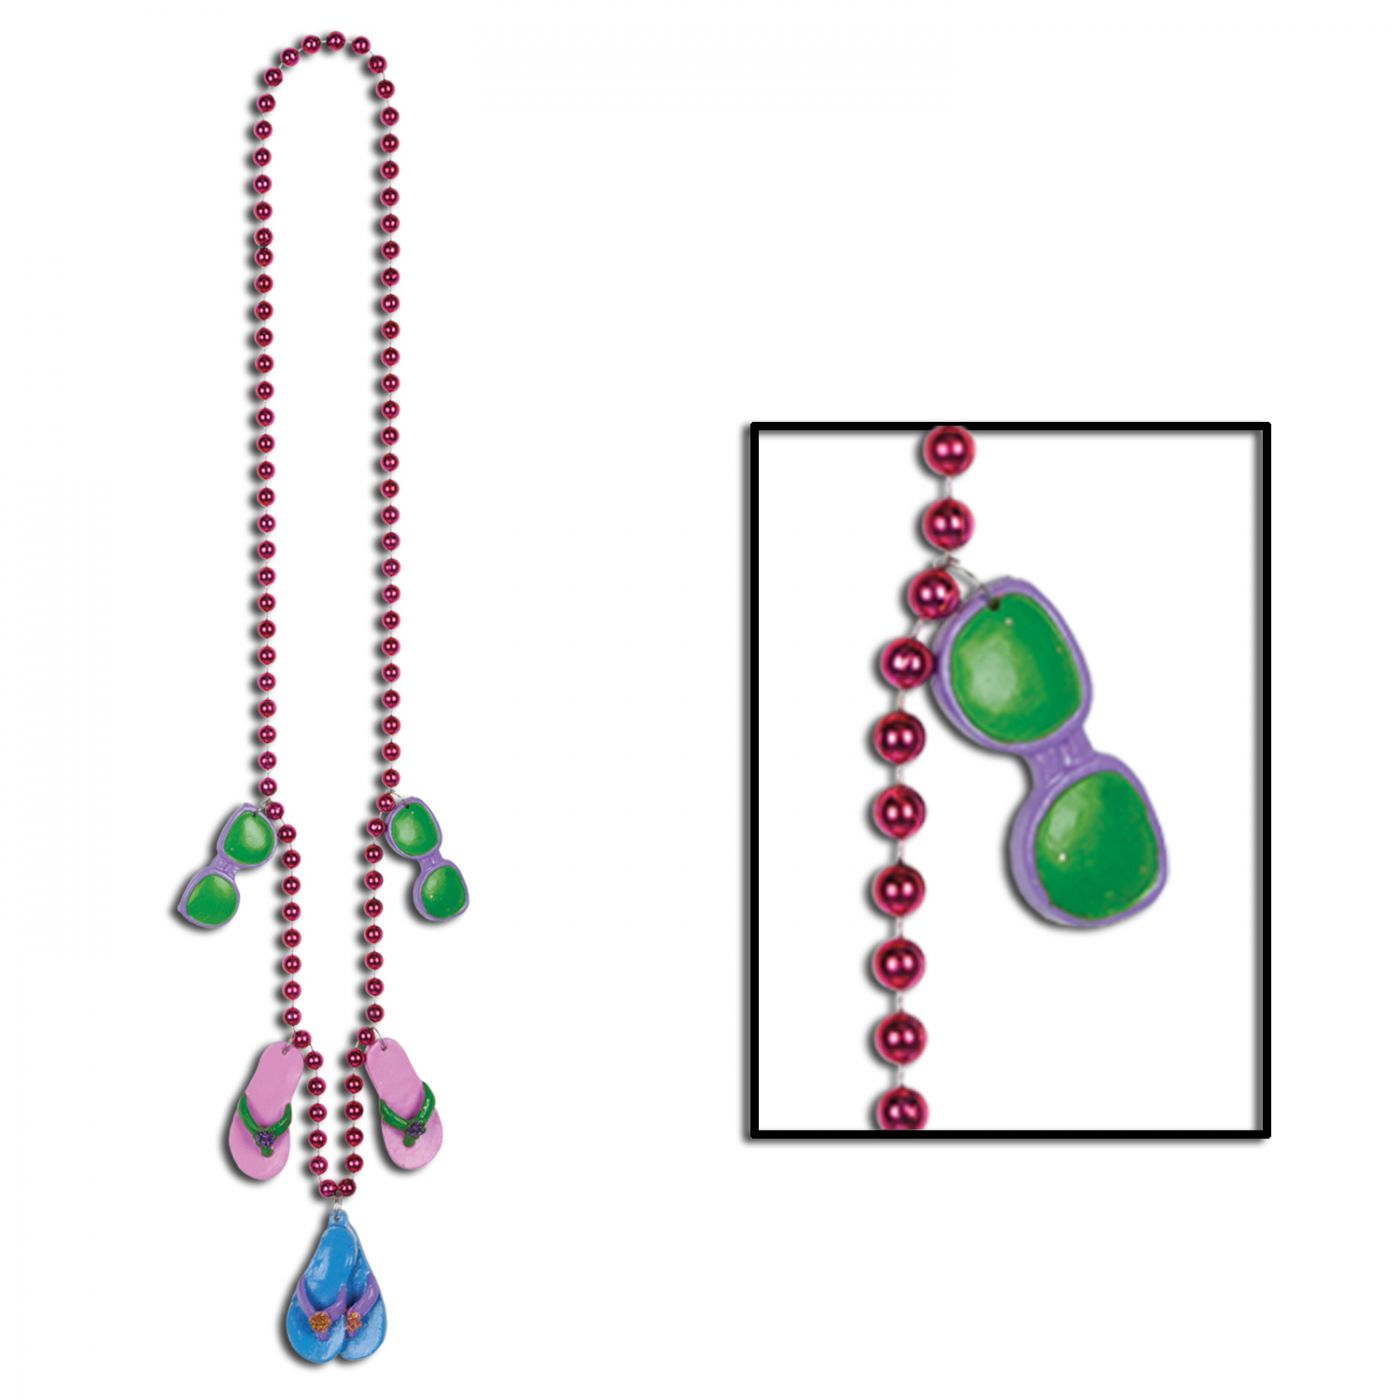 Image of Beads w/Flip Flop Medallions